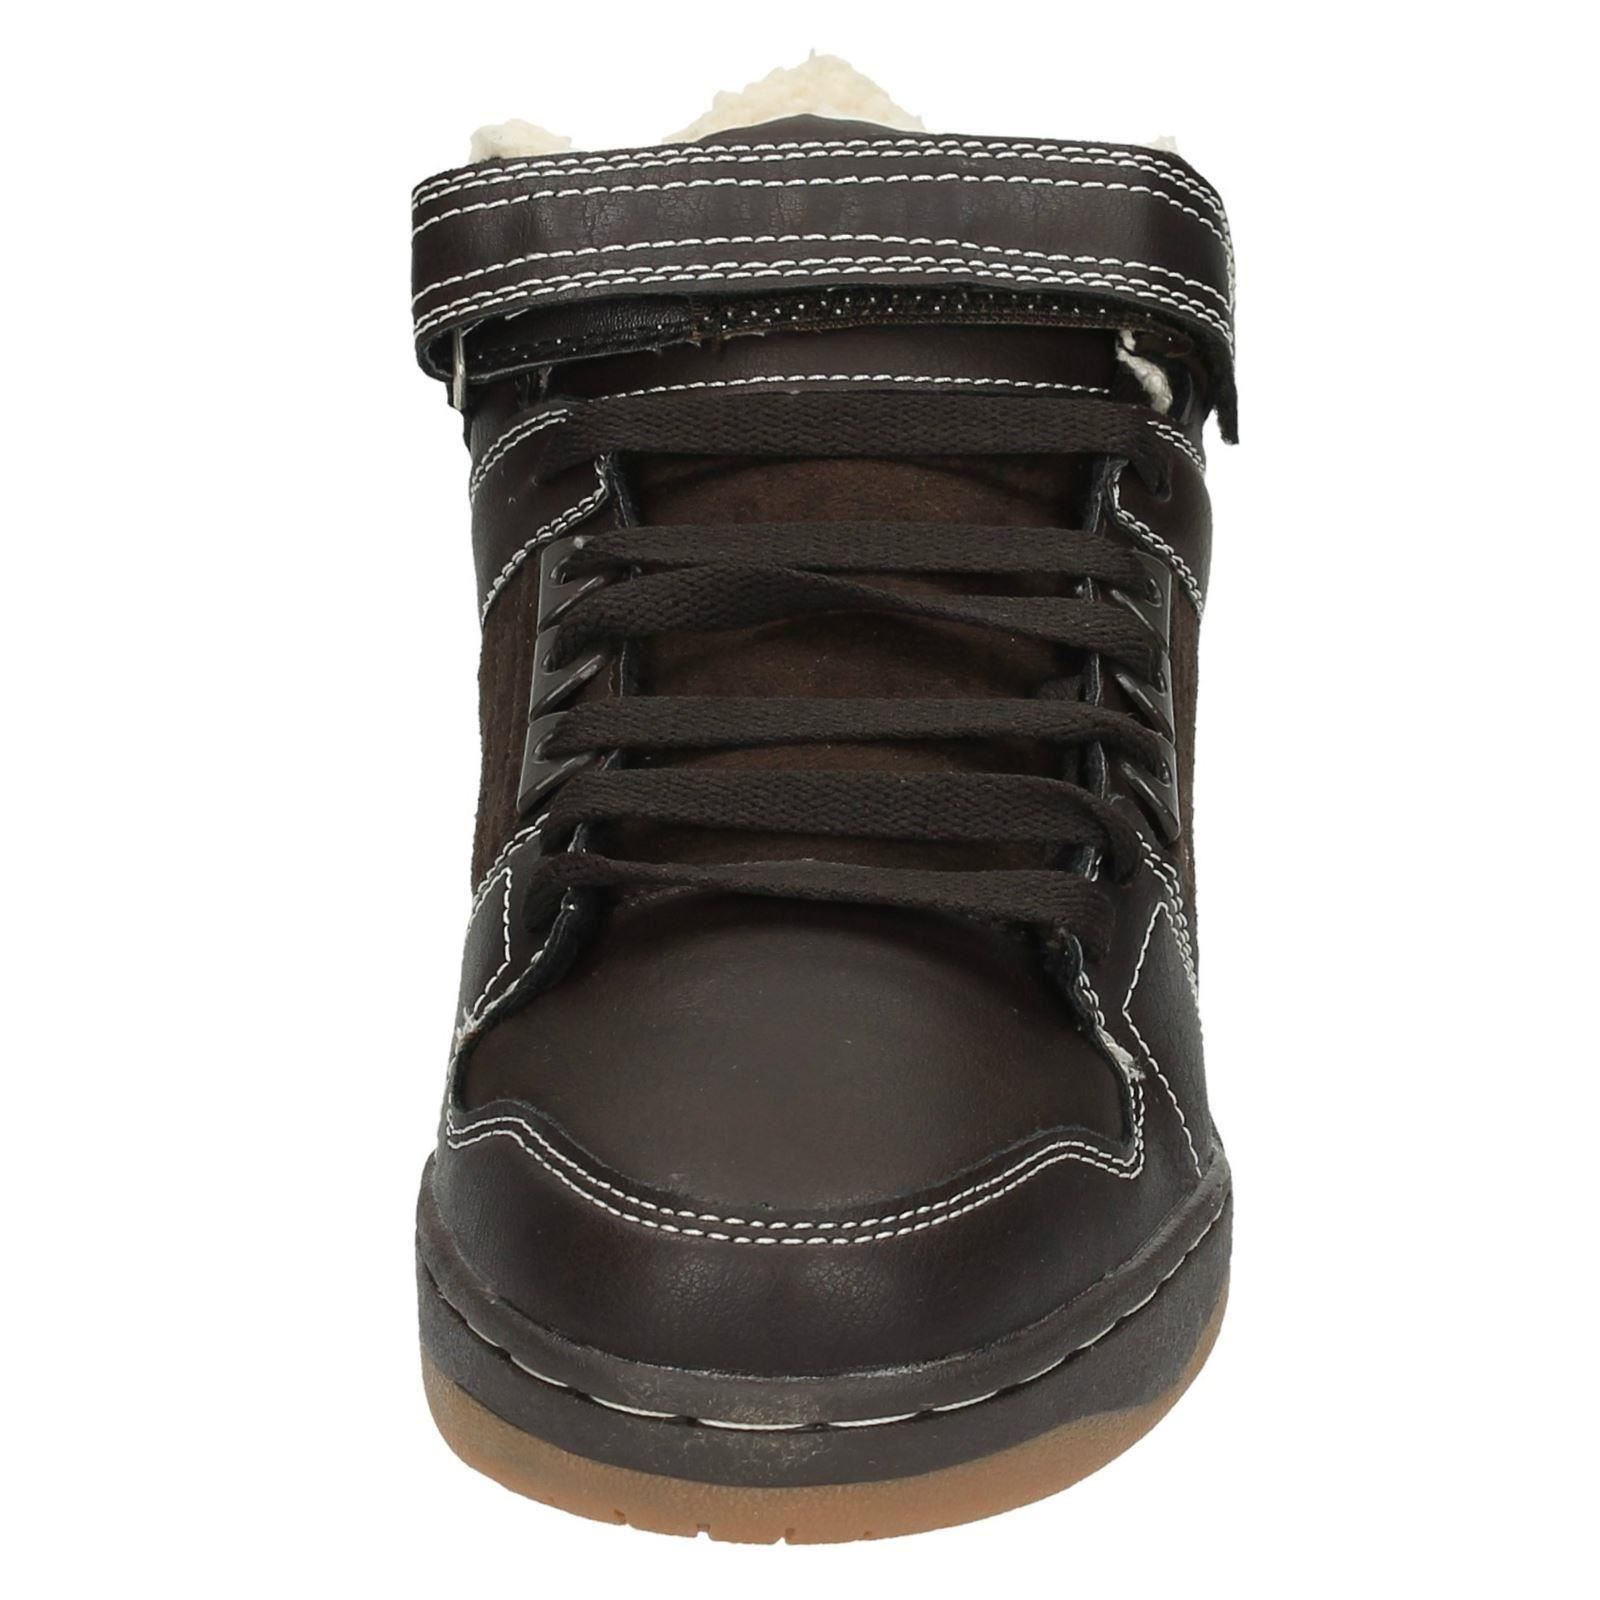 mens mx2 boots label fur lined boot w ebay